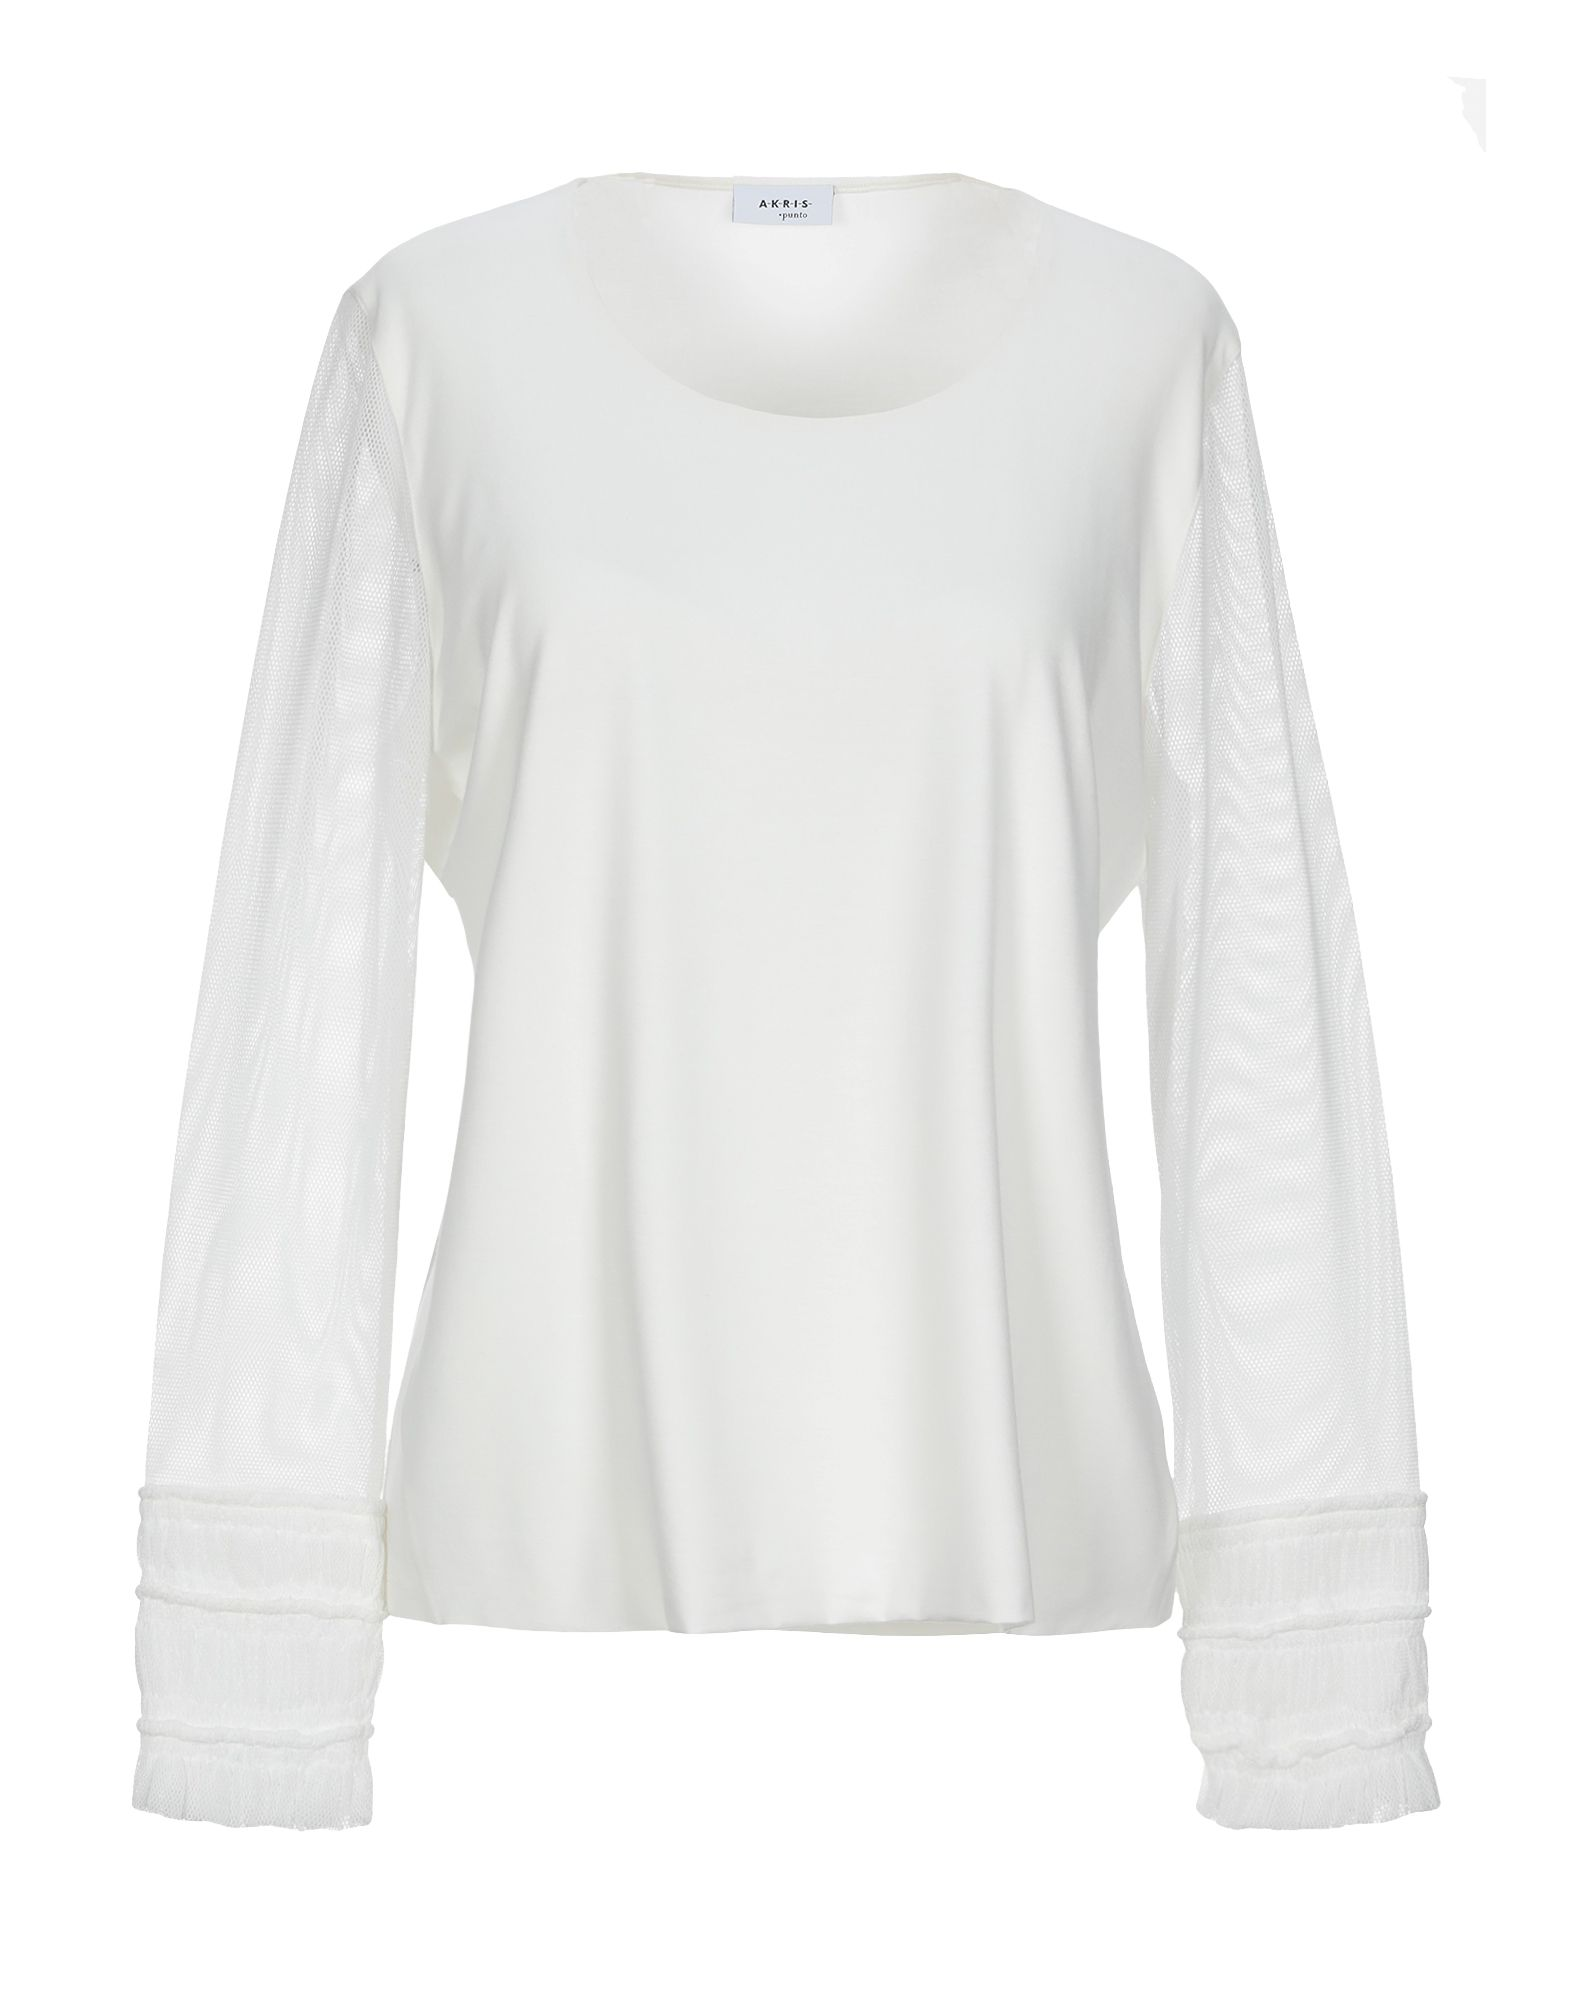 AKRIS PUNTO T-shirts. tulle, jersey, no appliqués, basic solid color, round collar, long sleeves, stretch. 95% Modal, 5% Elastane, Polyester